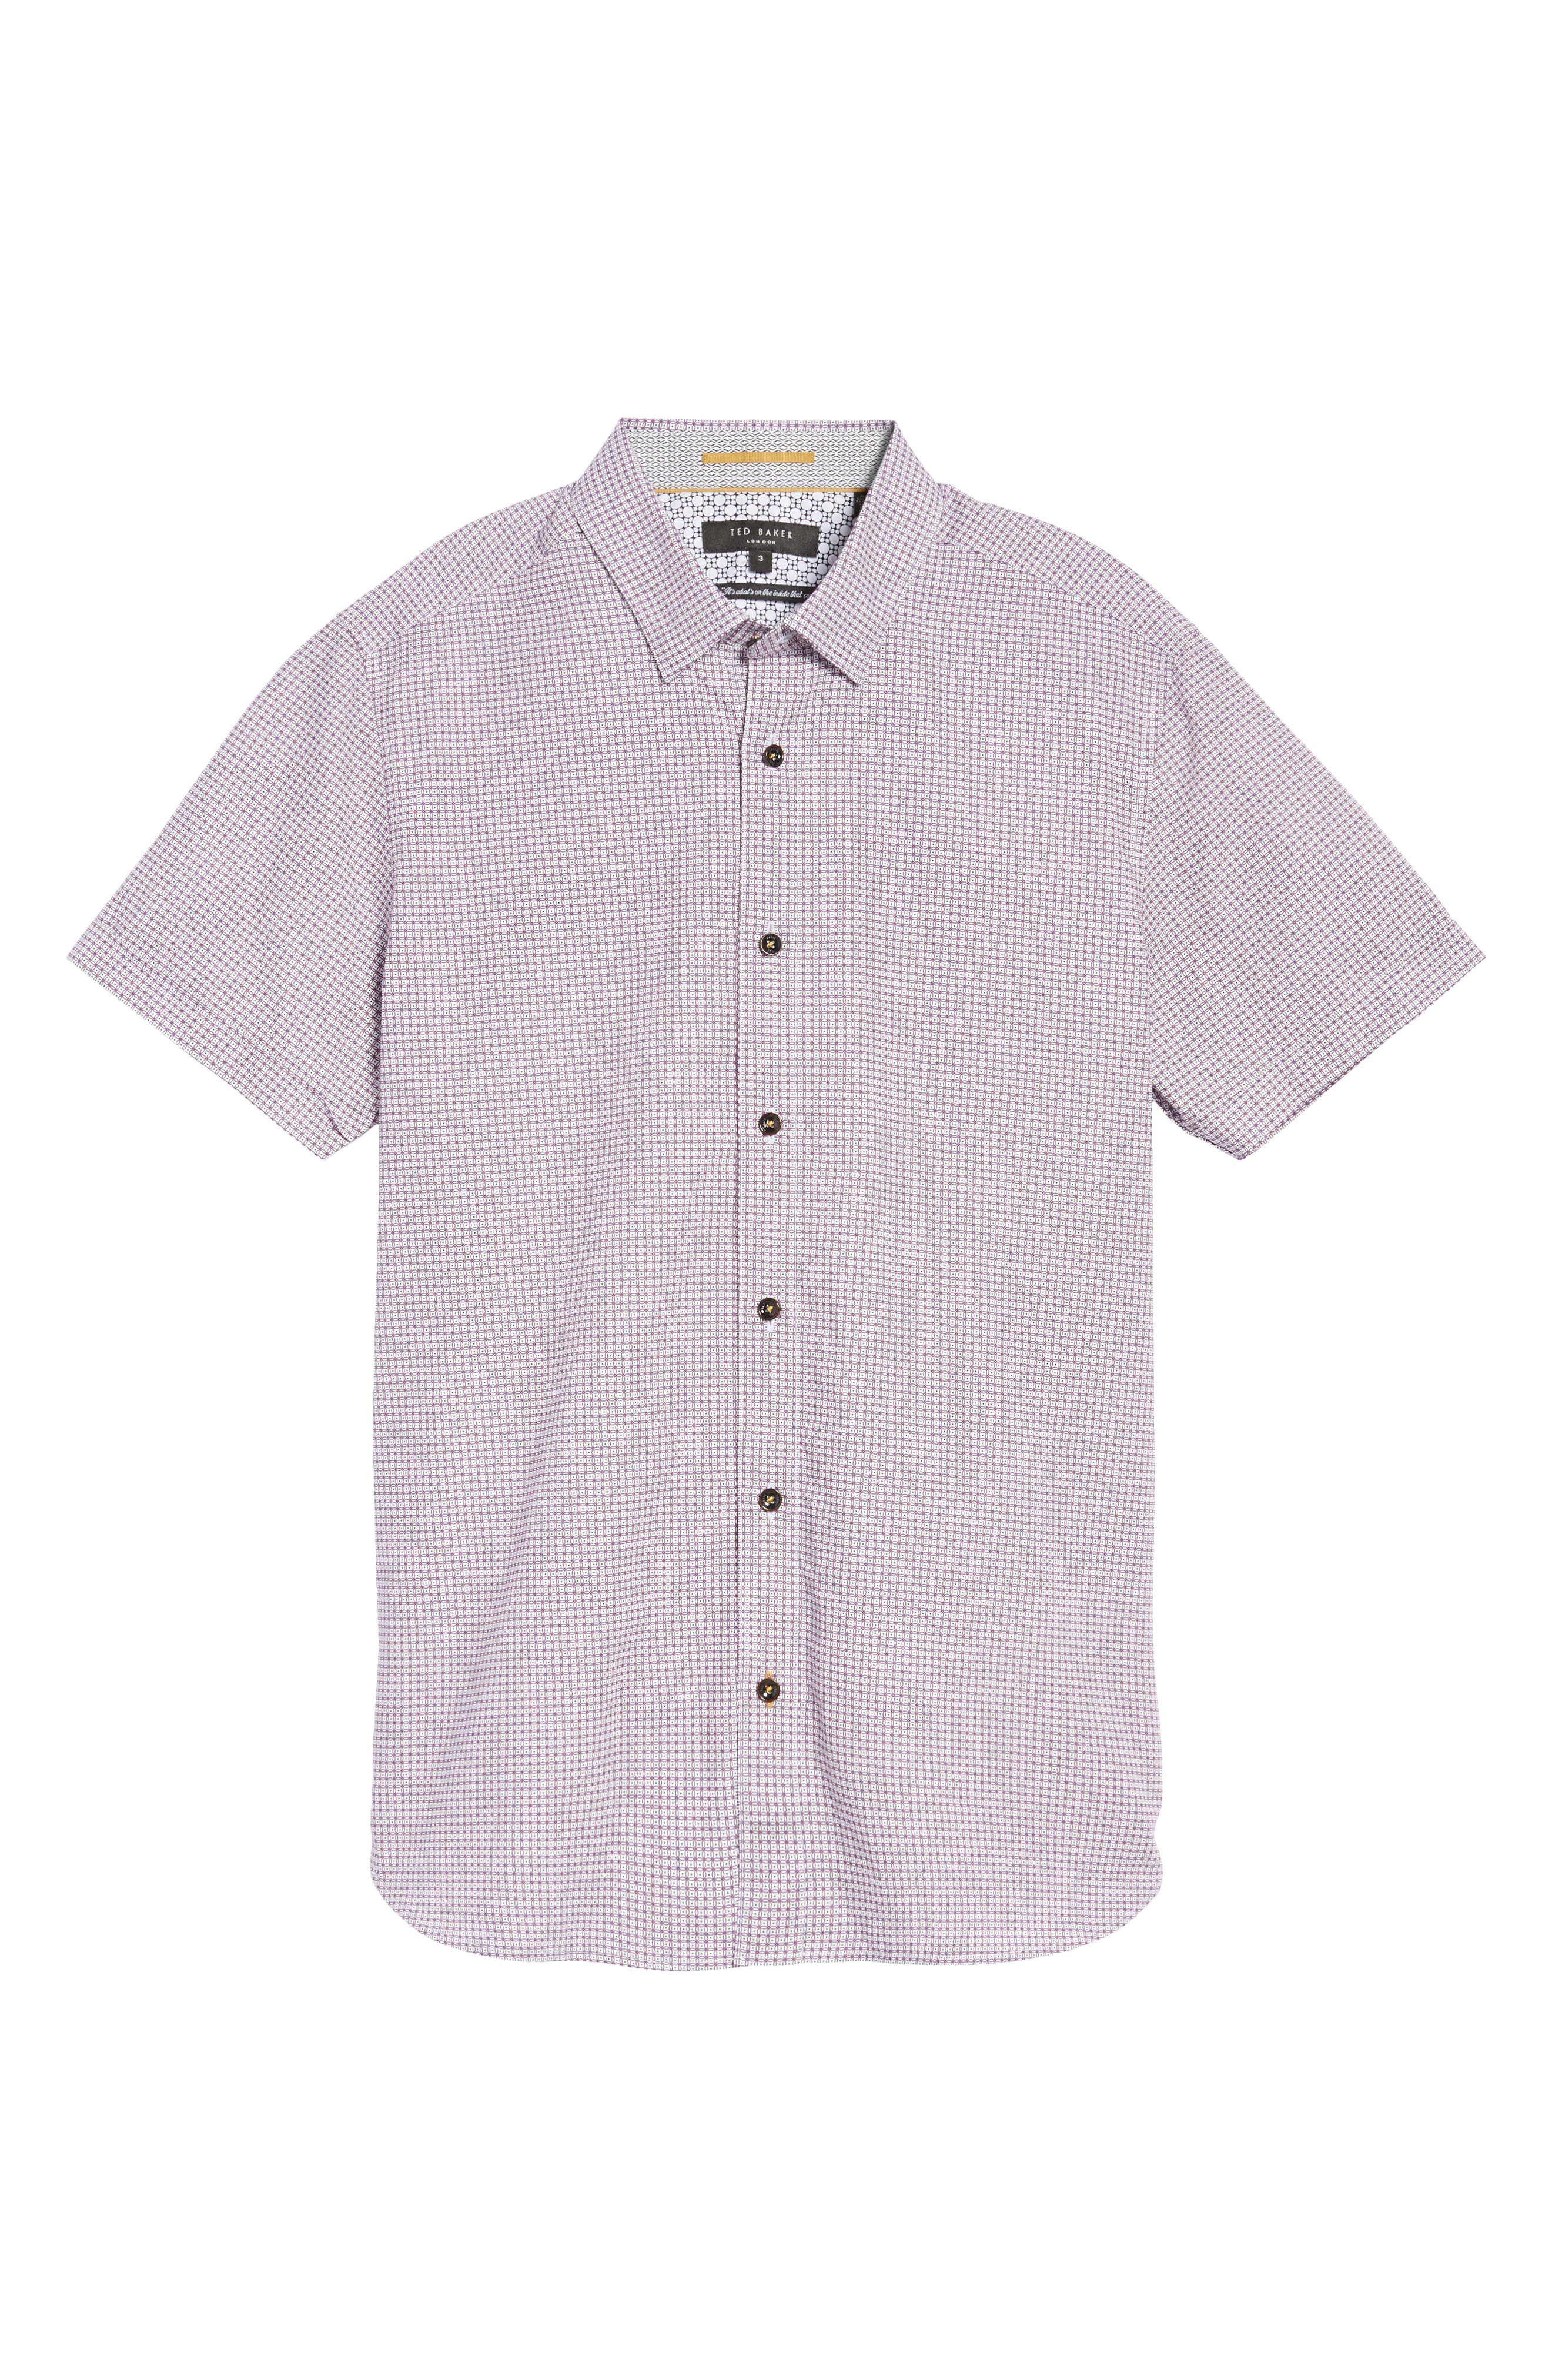 Alternate Image 5  - Ted Baker London Tennent Trim Fit Microprint Woven Shirt